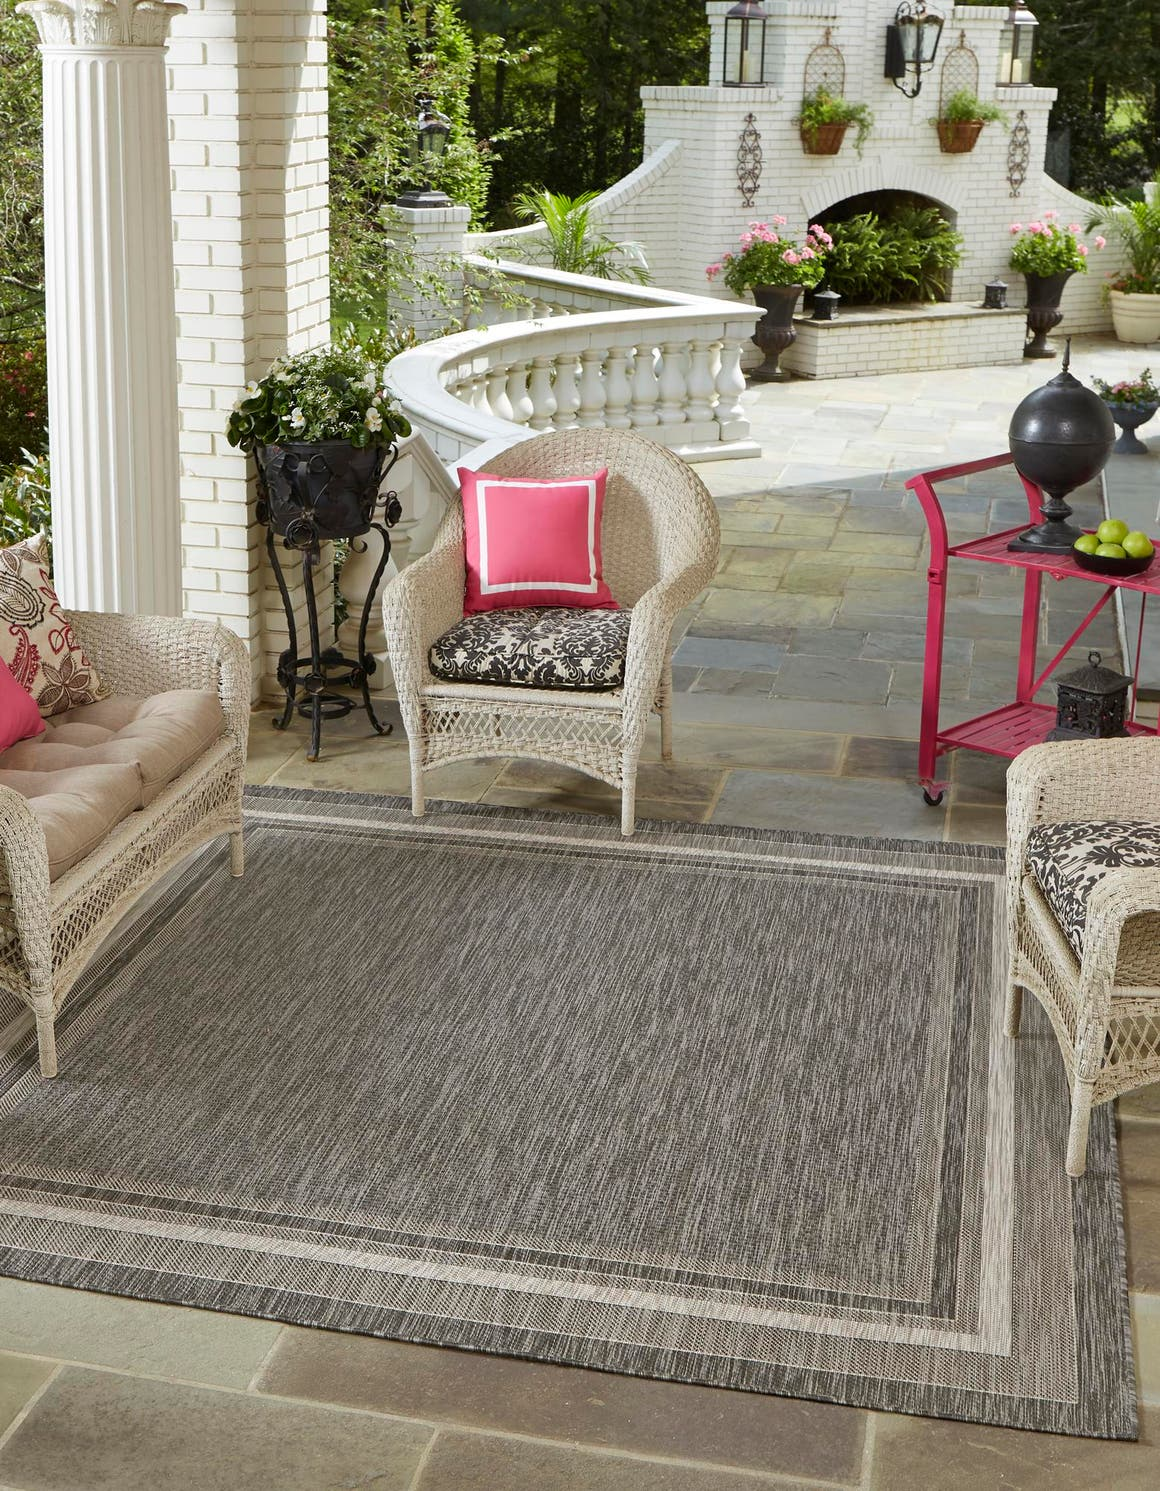 5' x 5' Outdoor Border Square Rug main image